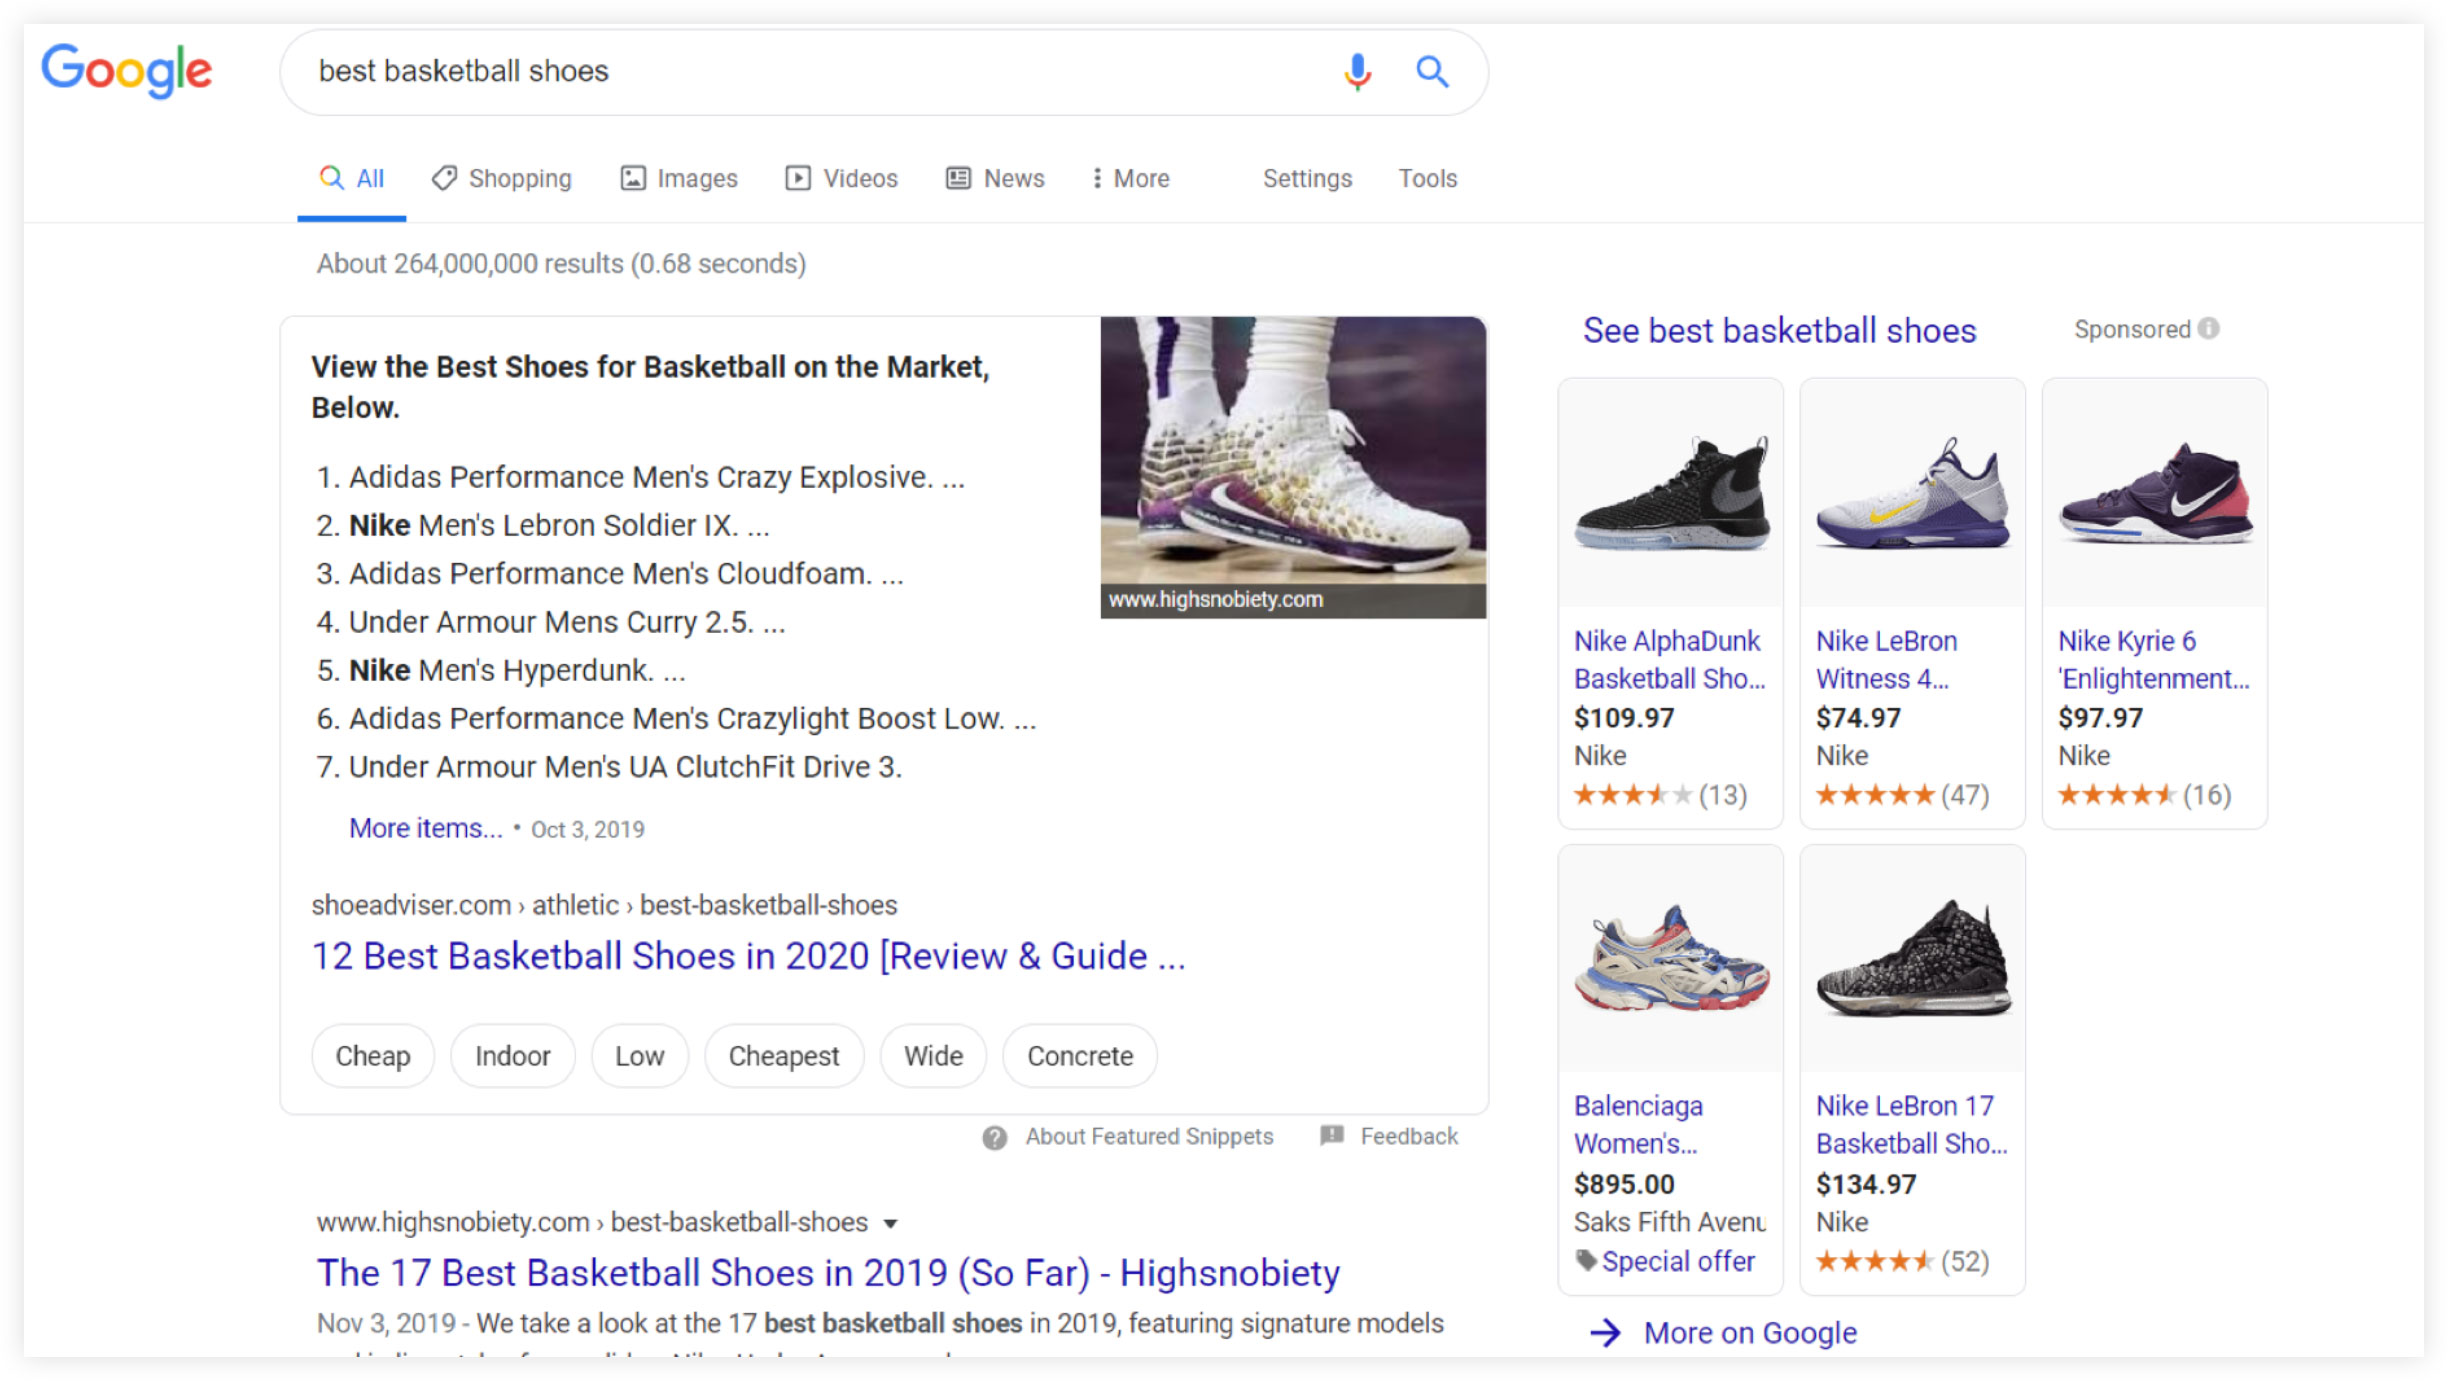 Google Search Results for Best Basketball Shoes